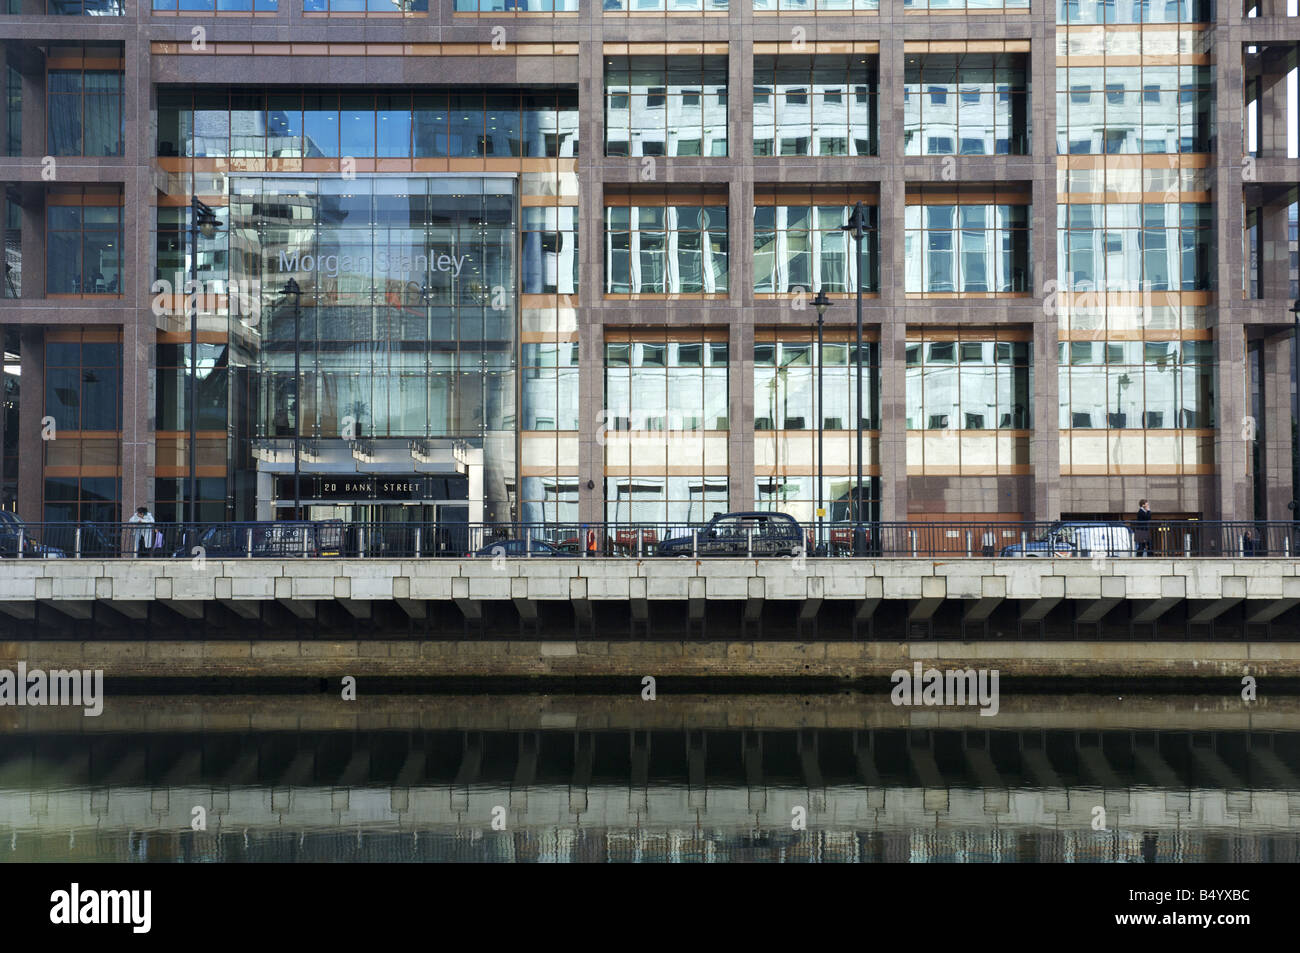 Morgan Stanley Building on Bank Street Canary Wharf London during the Credit Crisis - Stock Image